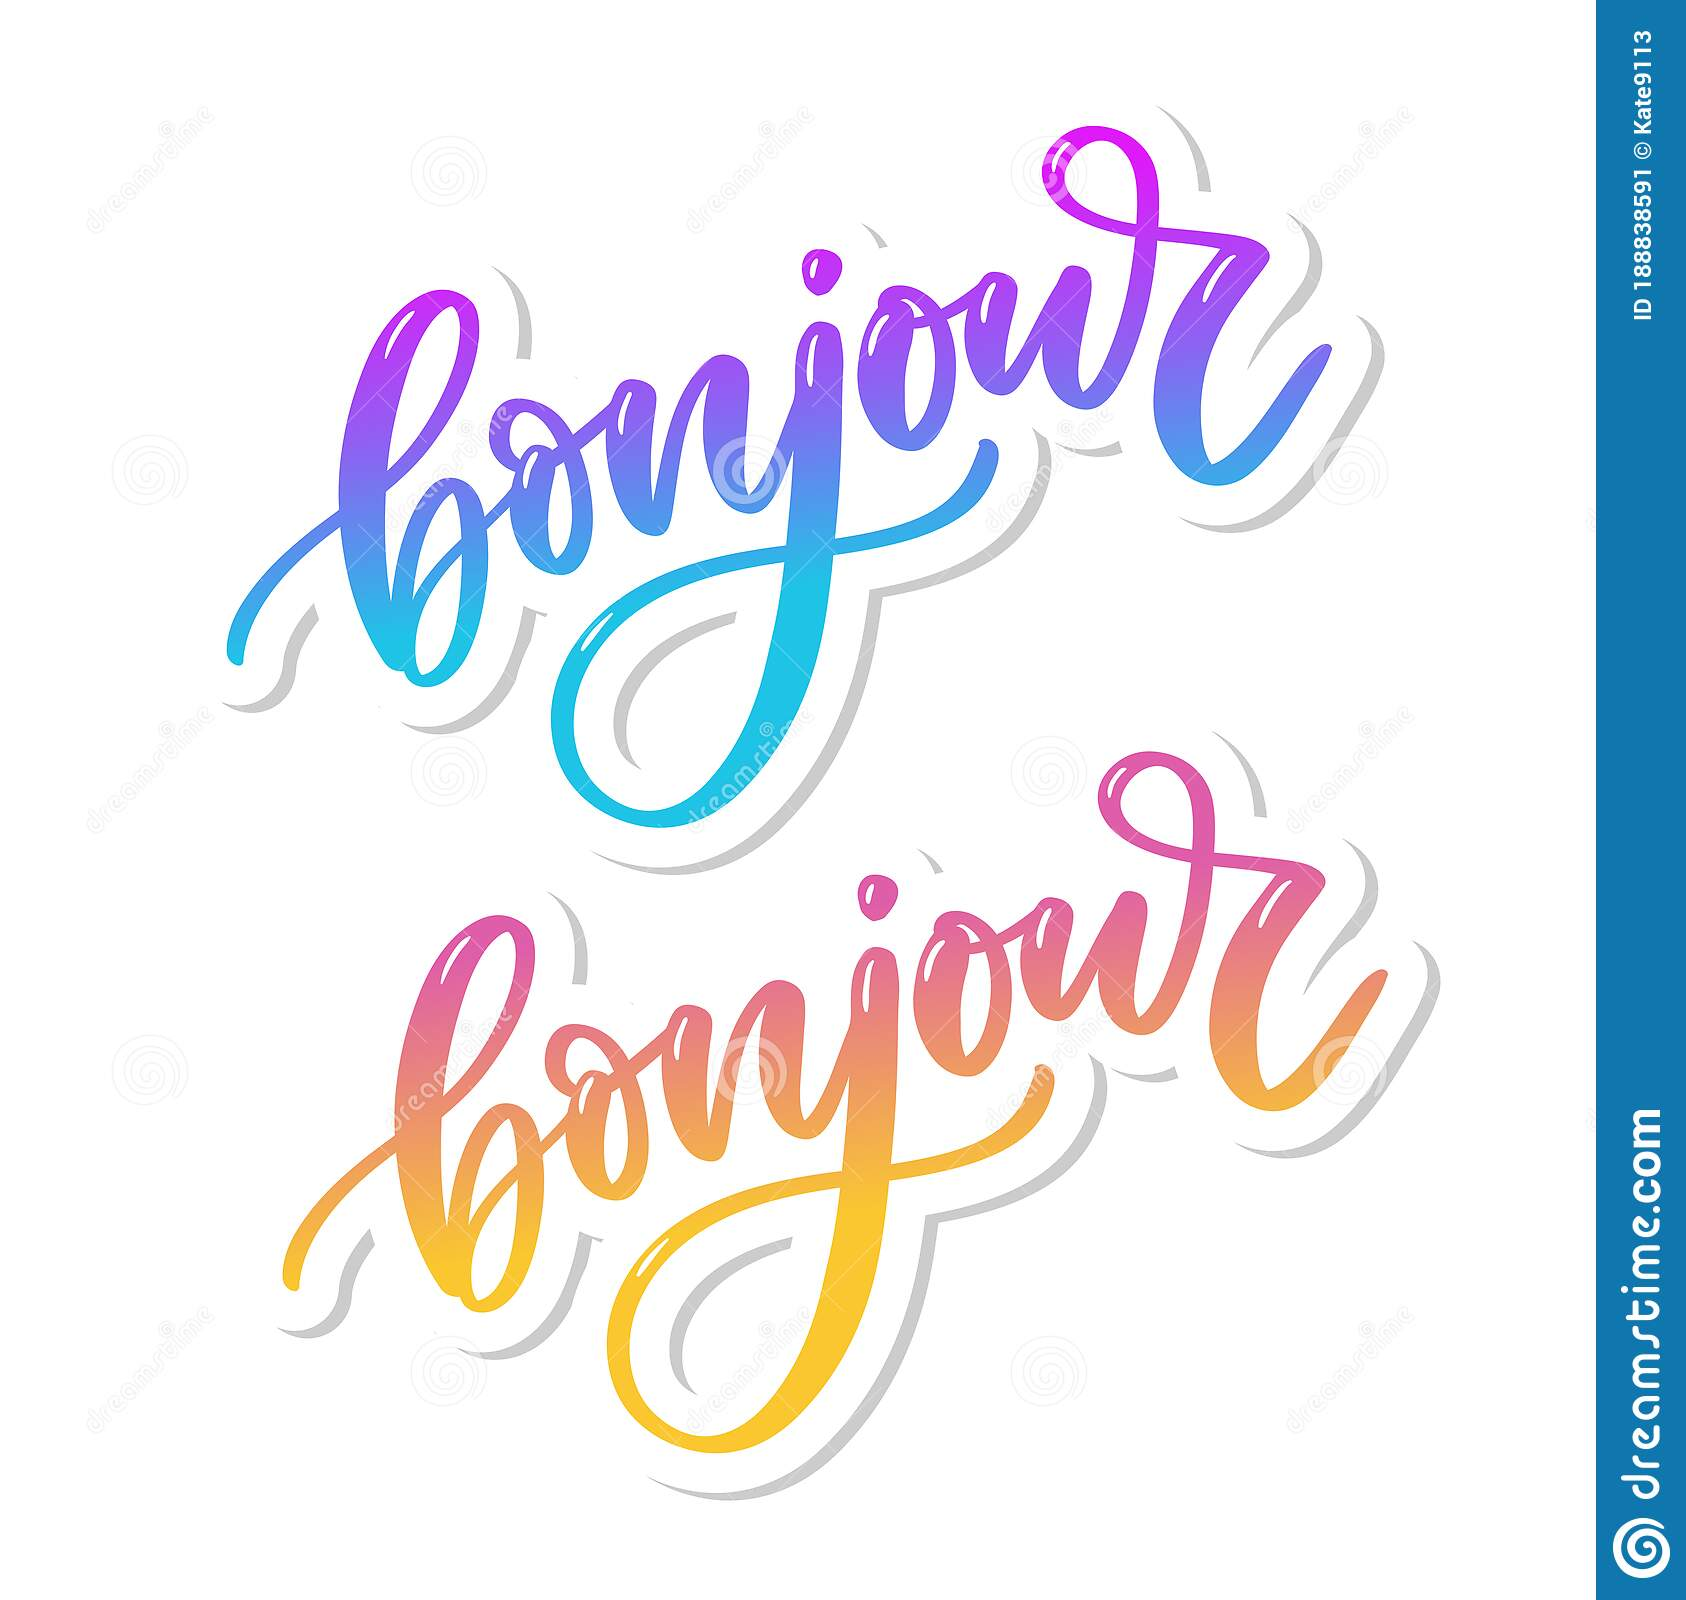 Bonjour Inscription Good Day In French Greeting Card With Calligraphy Hand Drawn Design Black And White Stock Illustration Illustration Of Design Artistic 188838591